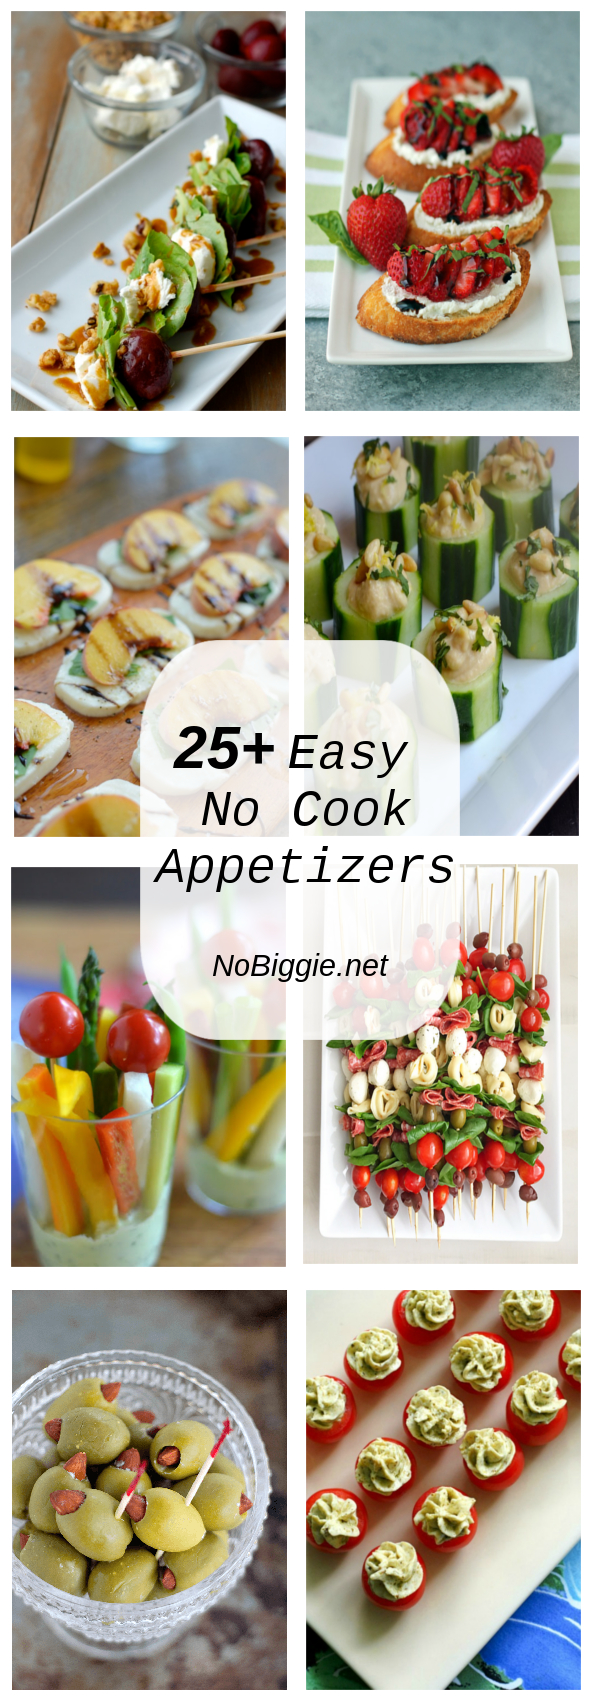 25+ Easy No Cook Appetizers | NoBiggie.net